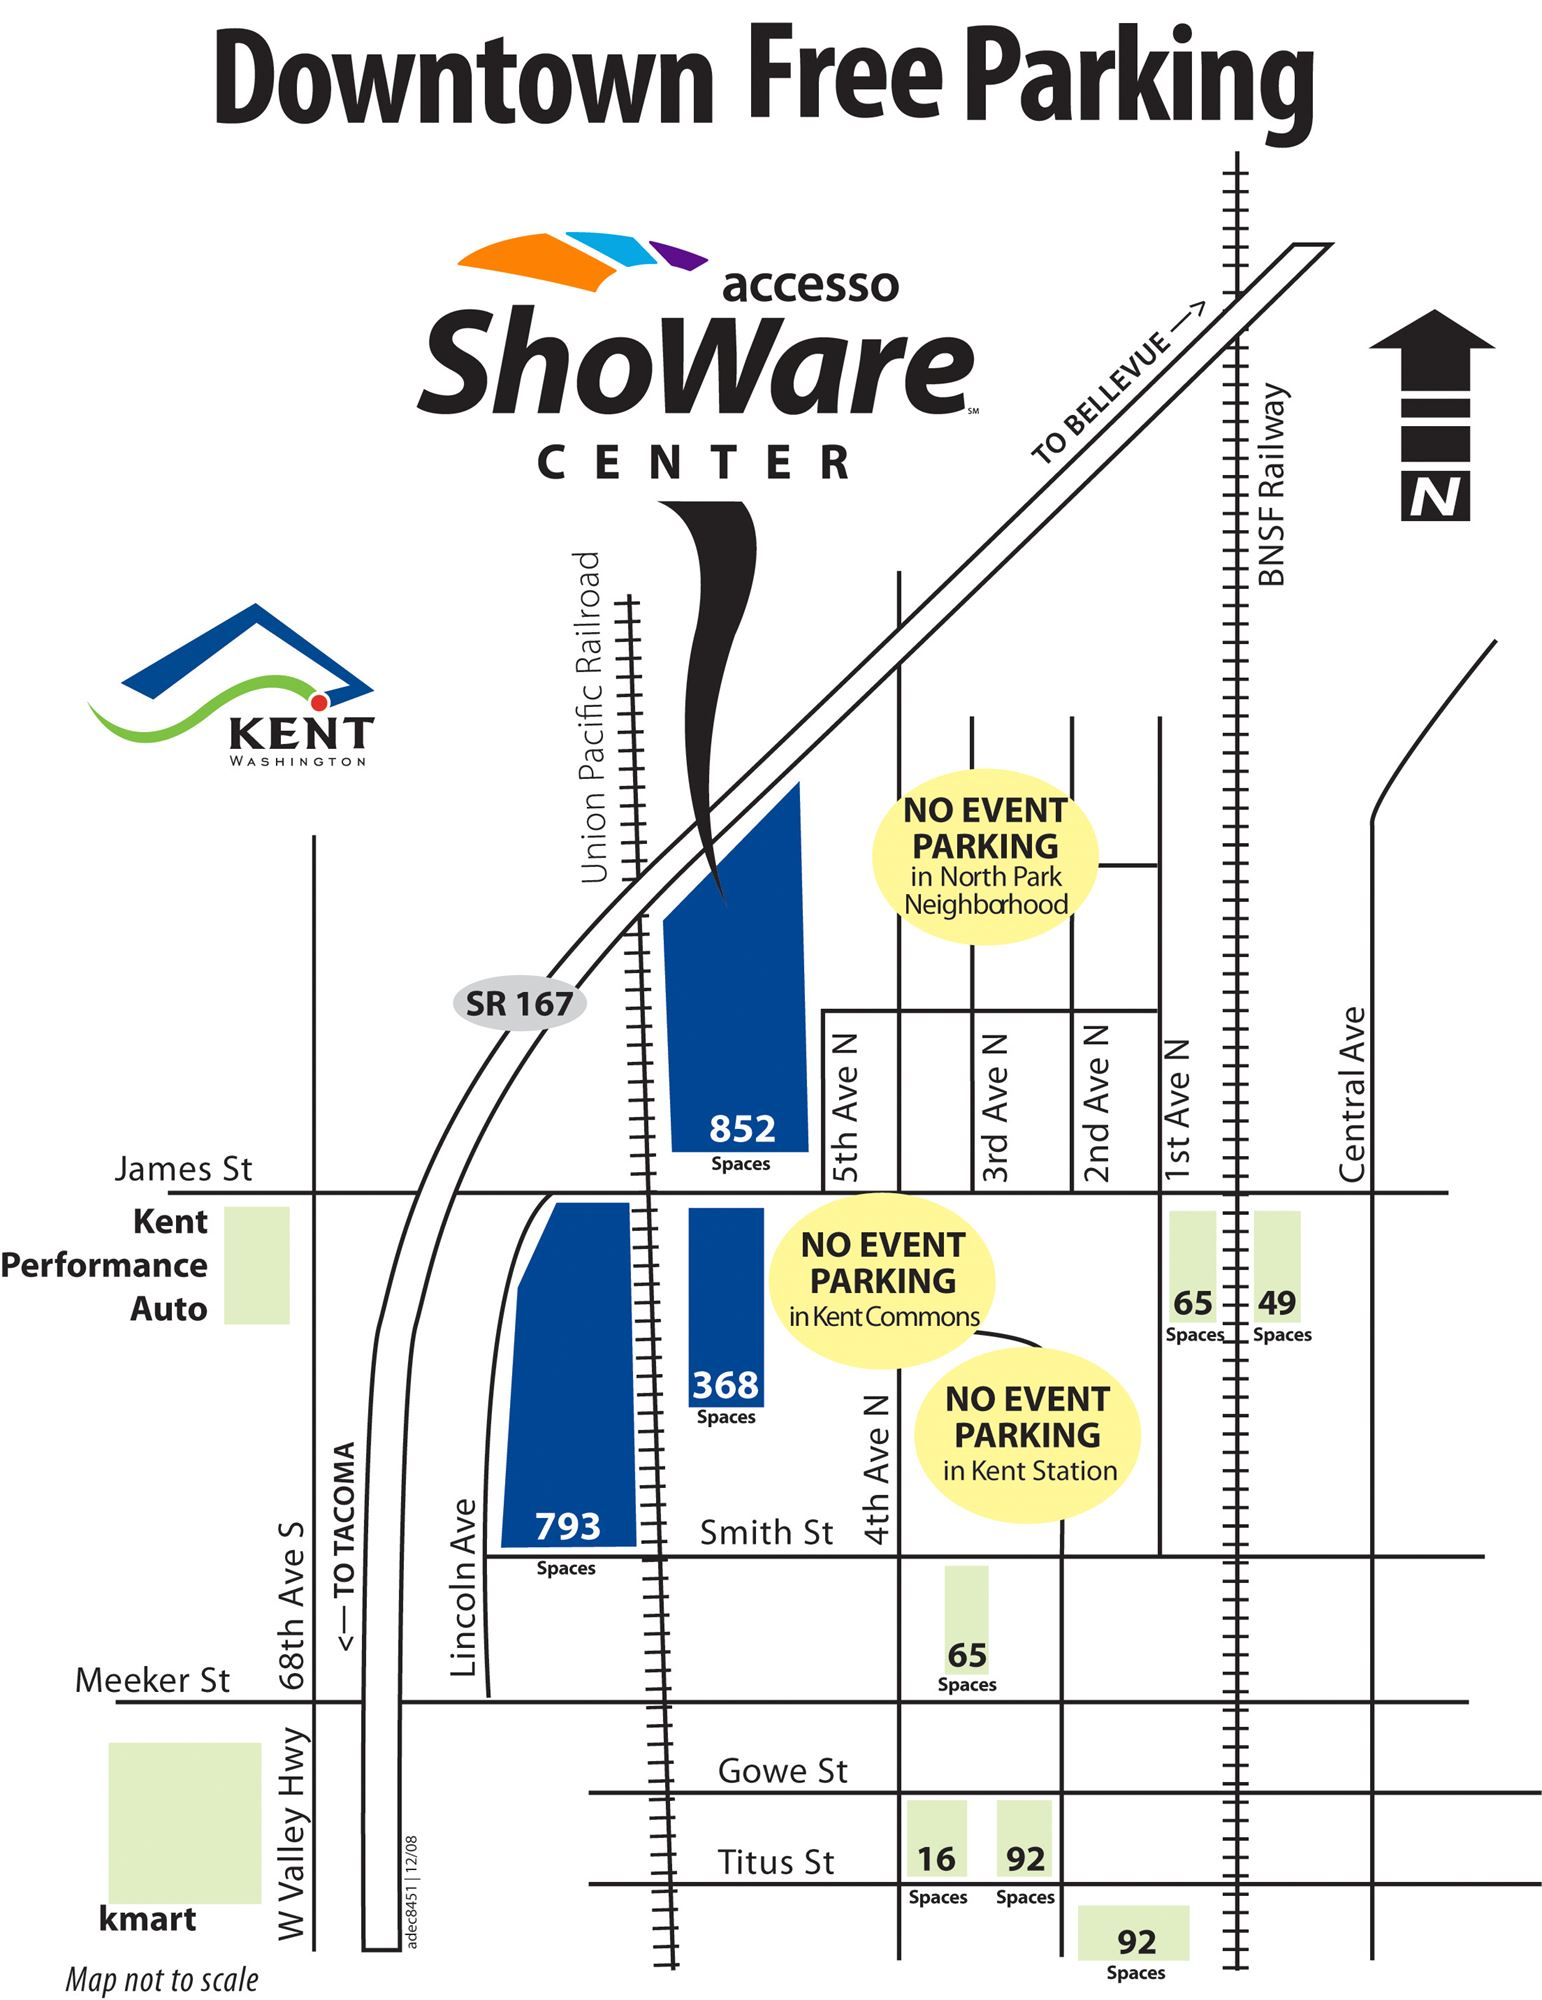 Parking Map of accesso ShoWare Center